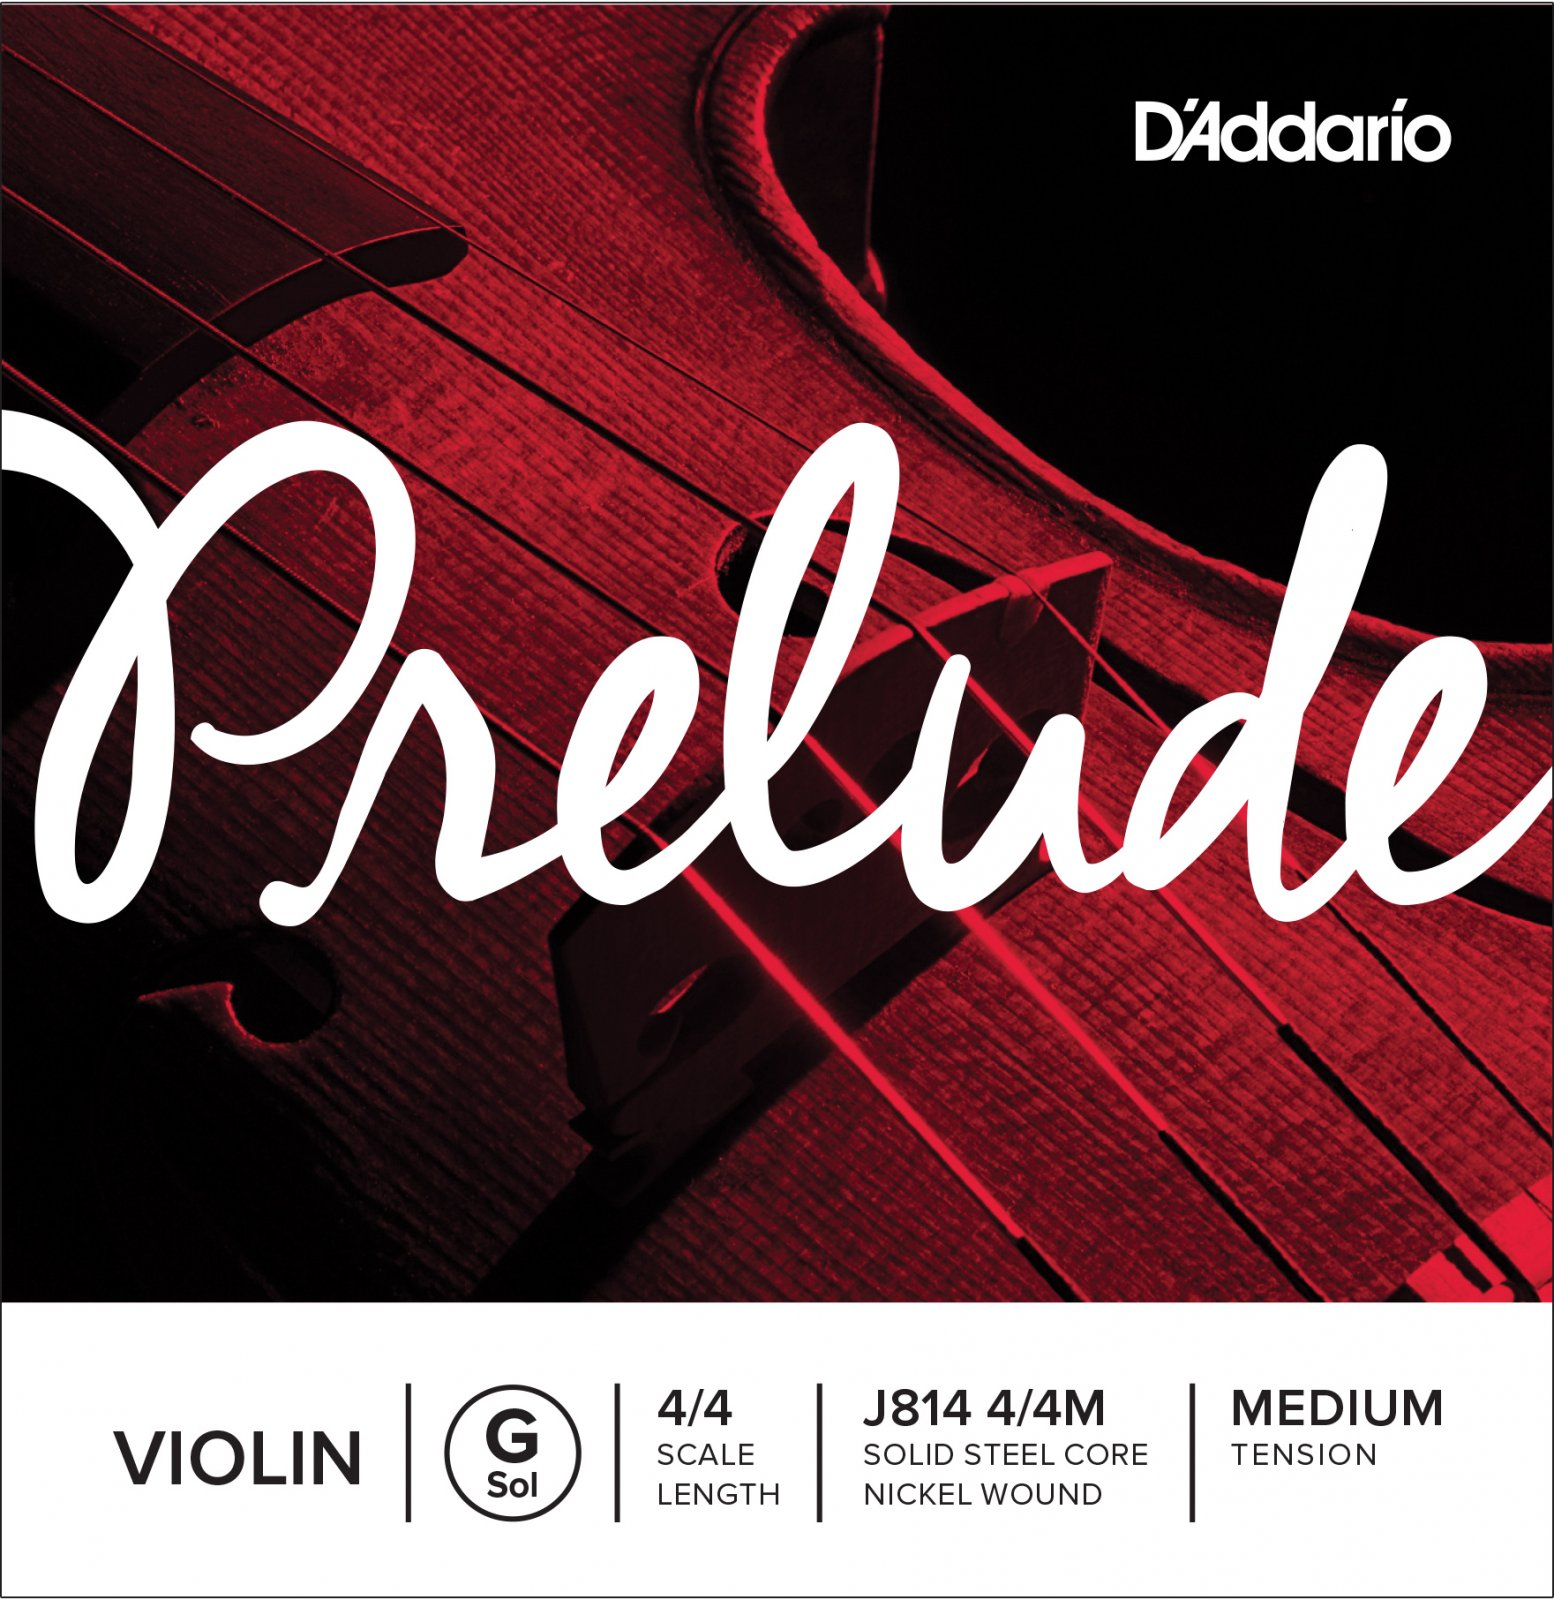 D'Addario J814 Prelude Violin Single G String Medium Tension 1/2 3/4 4/4